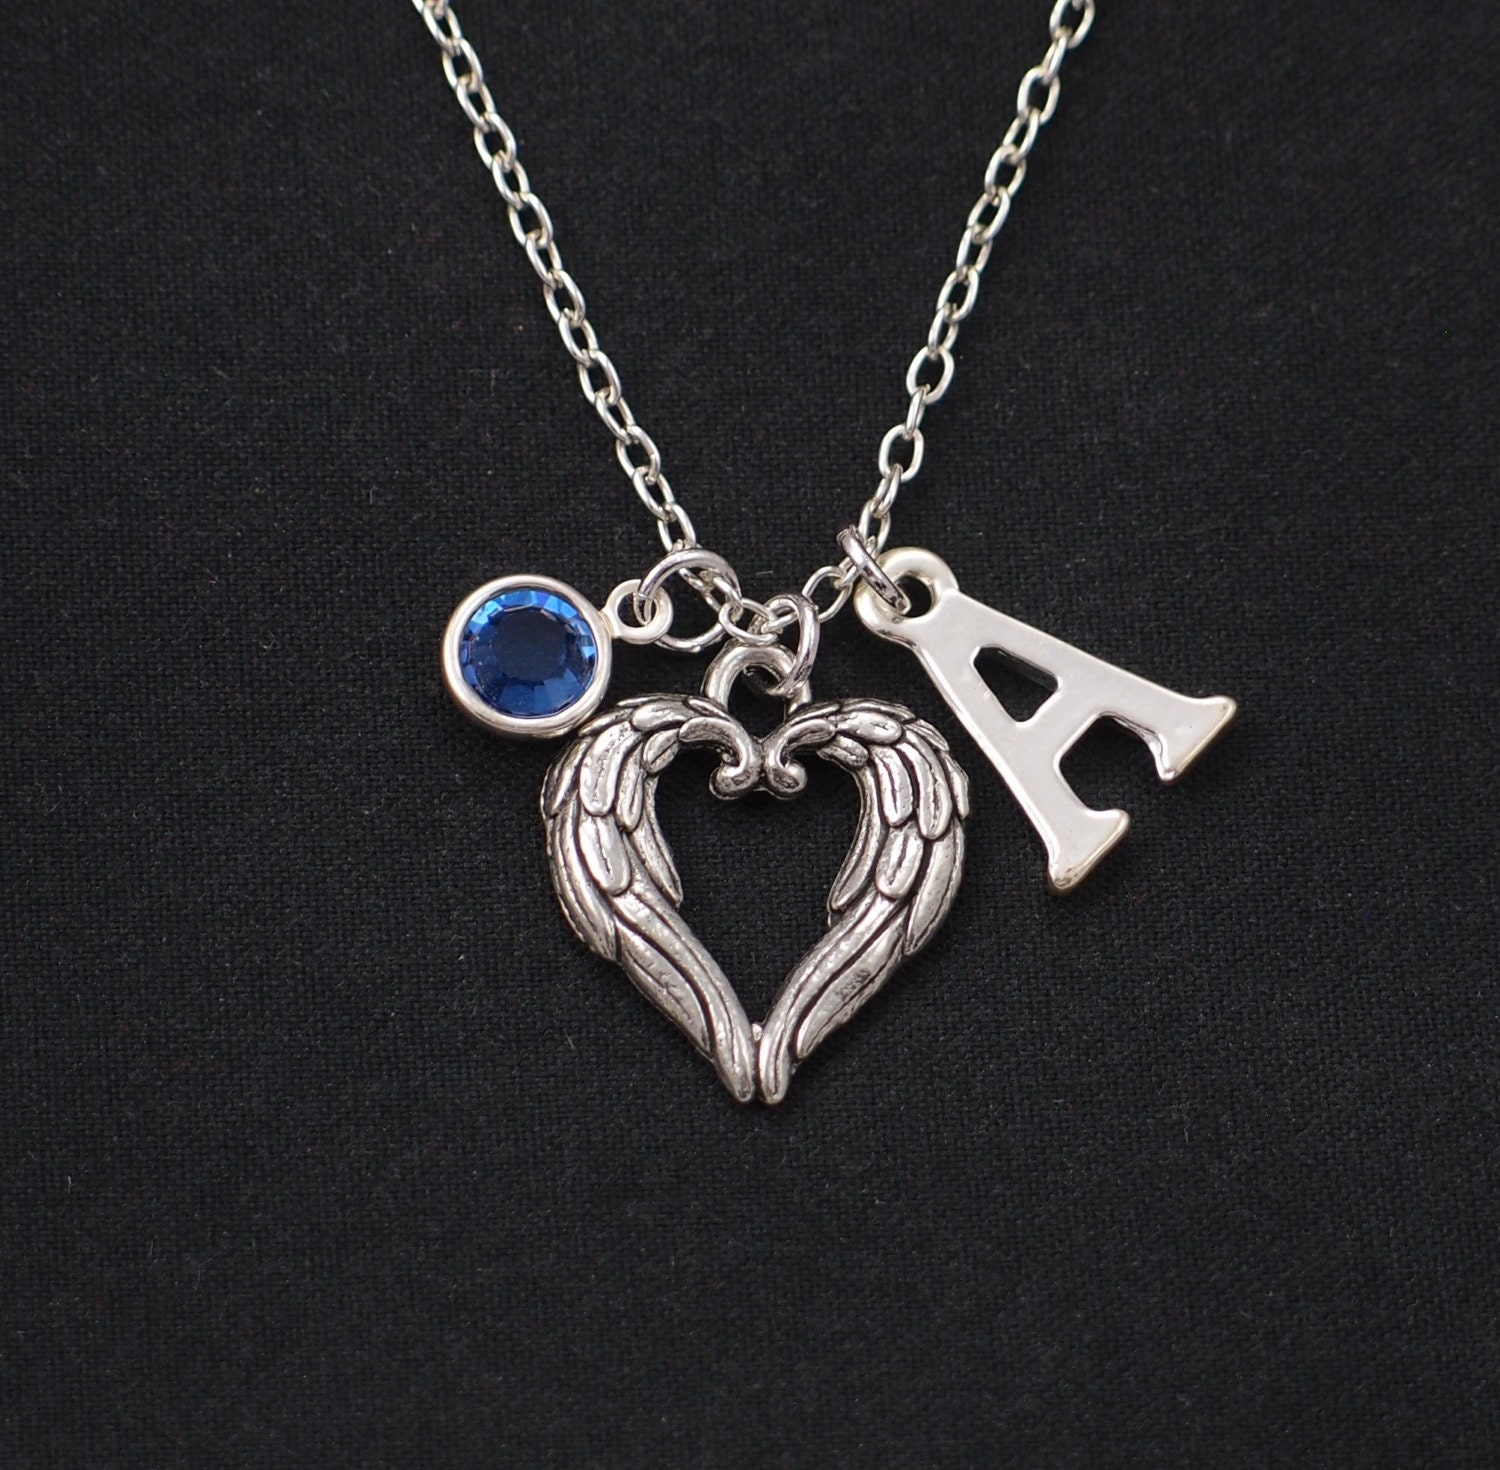 initial necklace angel wings heart necklace birthstone. Black Bedroom Furniture Sets. Home Design Ideas